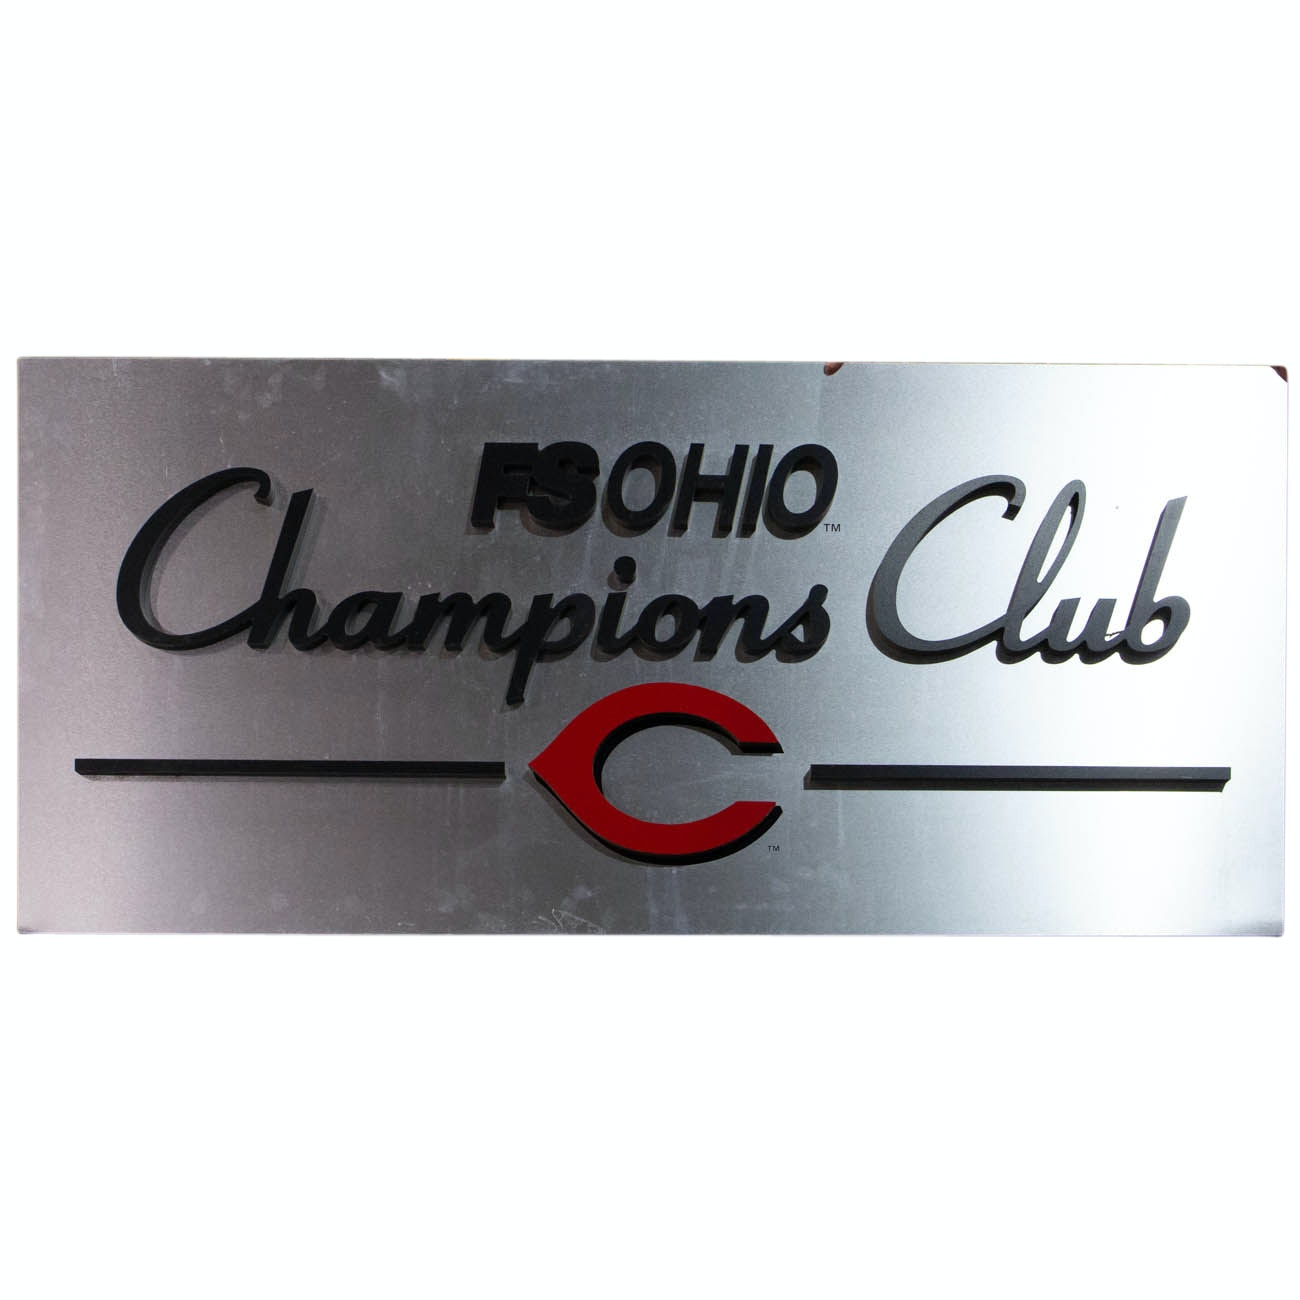 Fox Sports Ohio Champions Club Metal Sign From Great American Ball Park COA